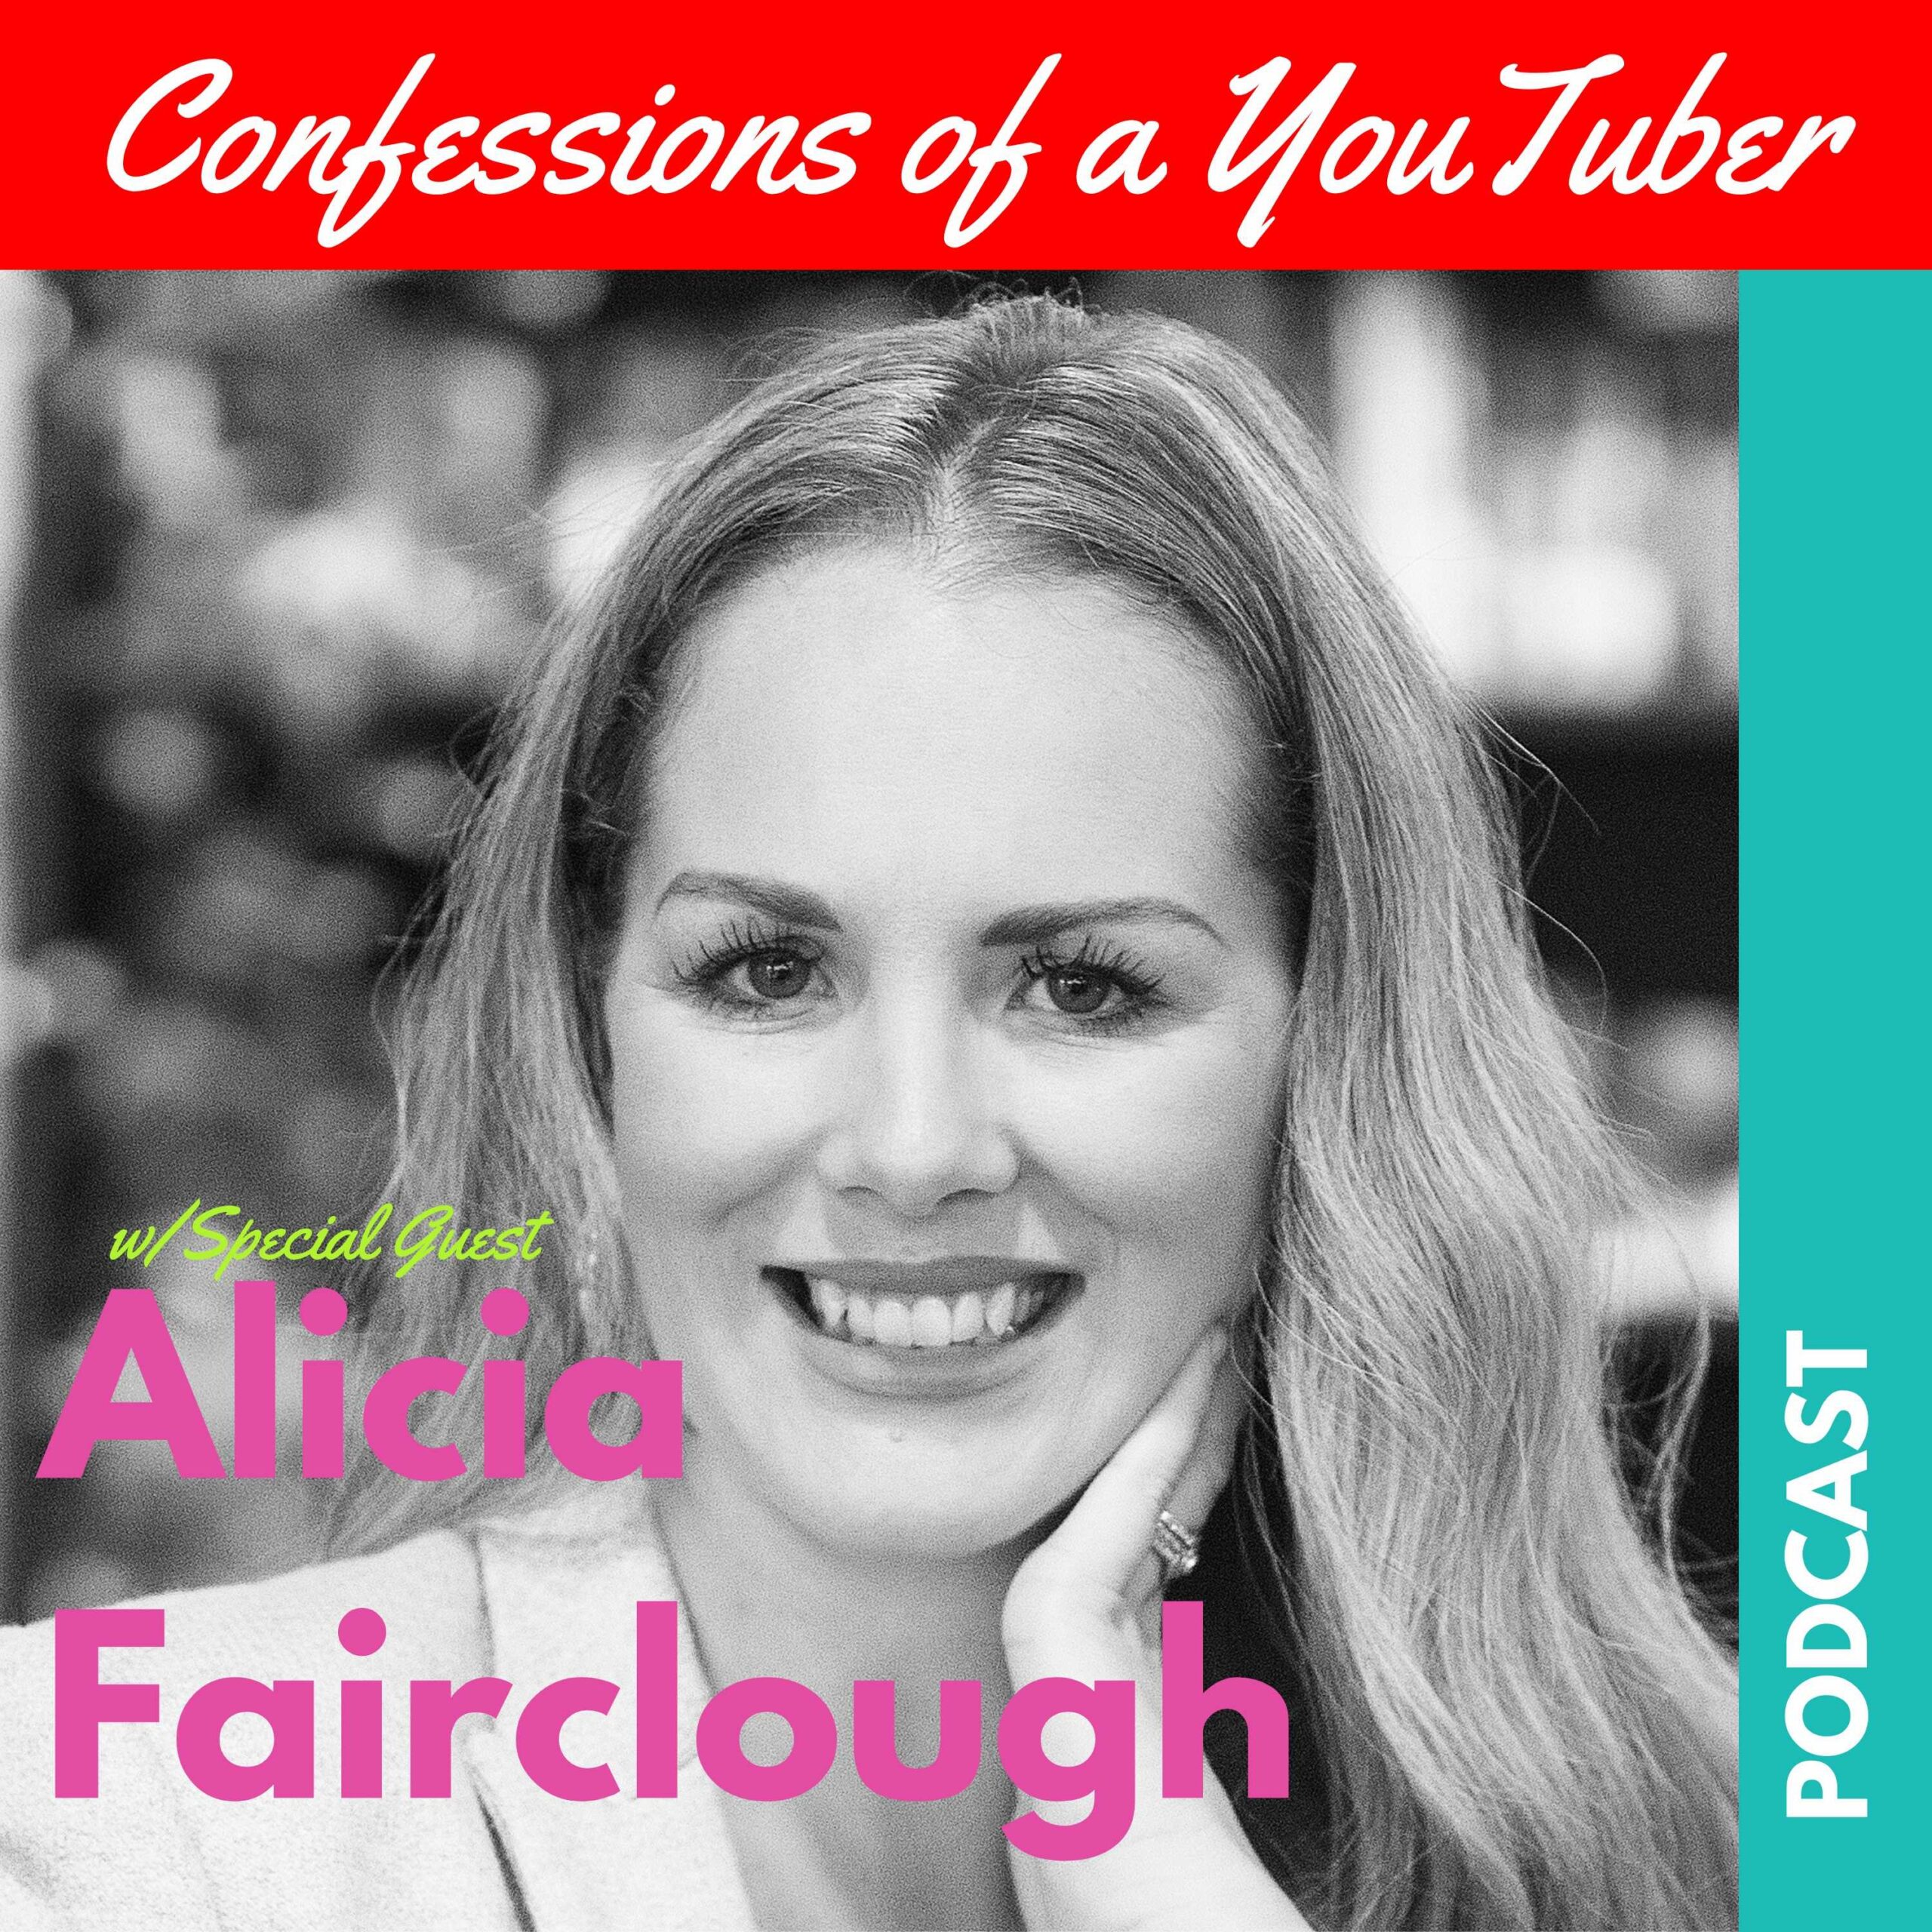 Alicia Fairclough tells her secret to creating a profitable Personal Brand on YouTube & shares her Entrepreneur story.